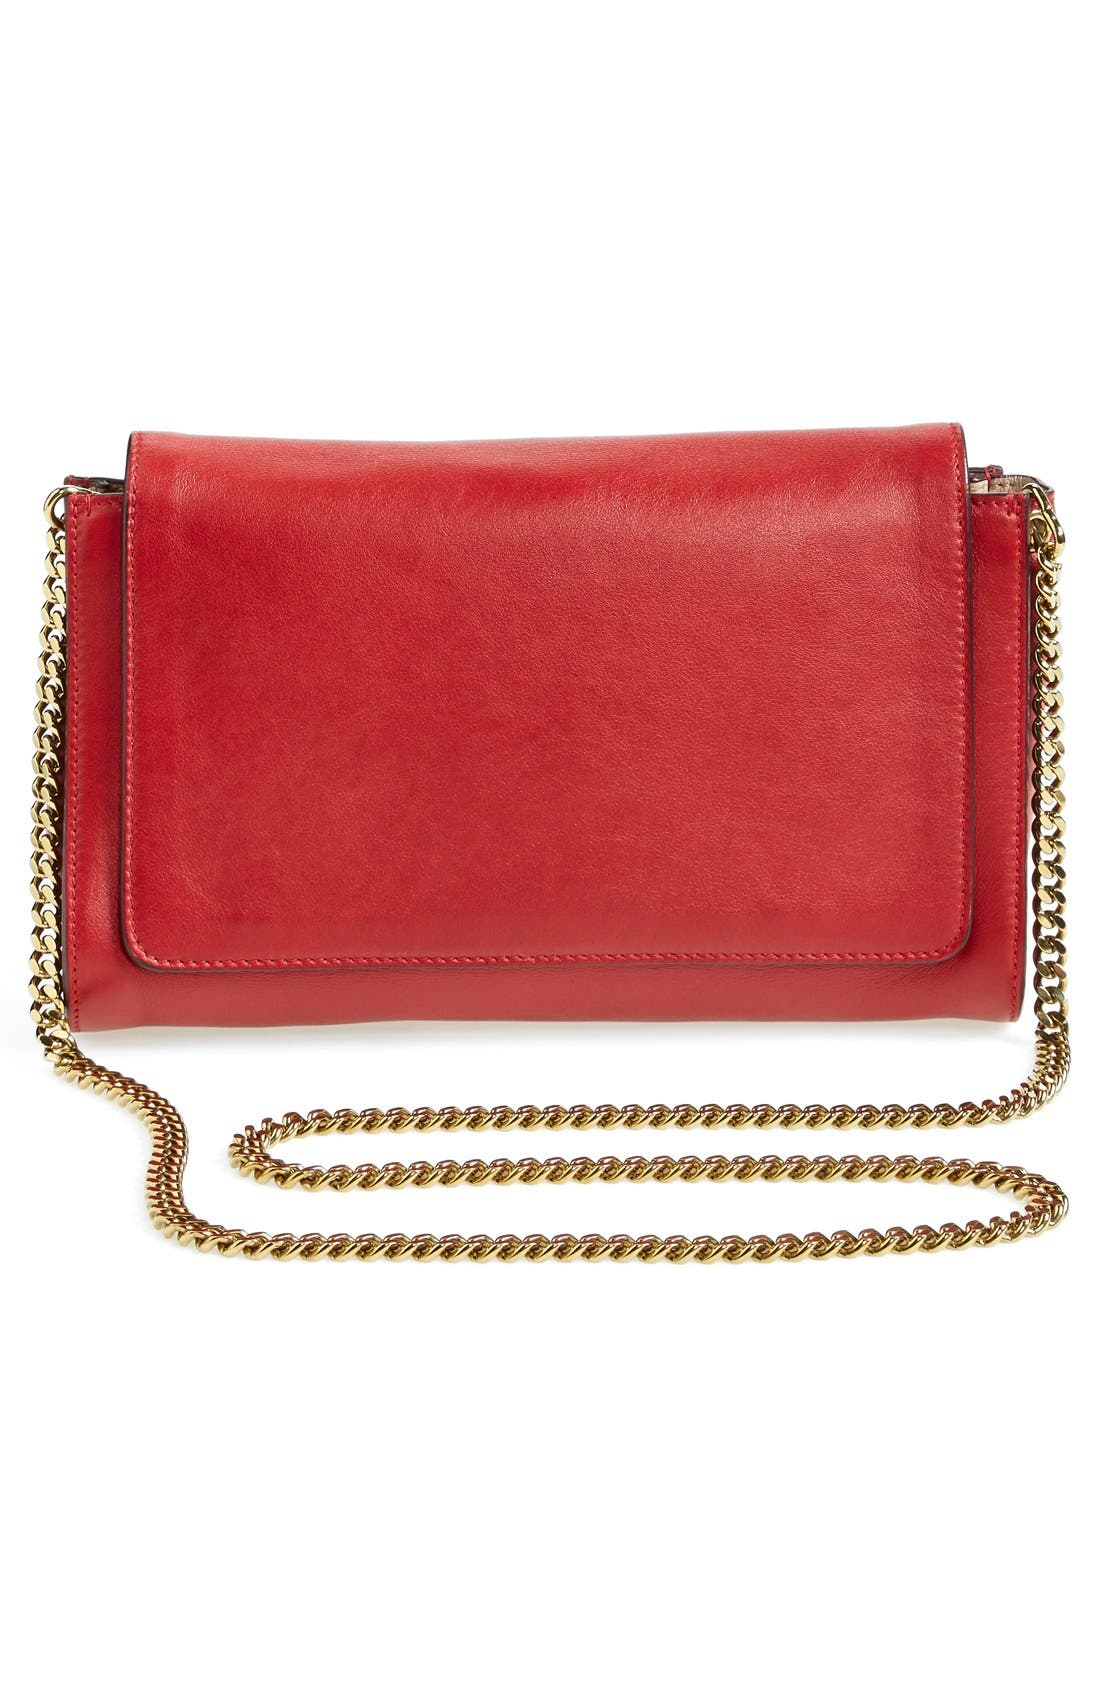 Alternate Image 3  - Chloé 'Elle - Medium' Clutch